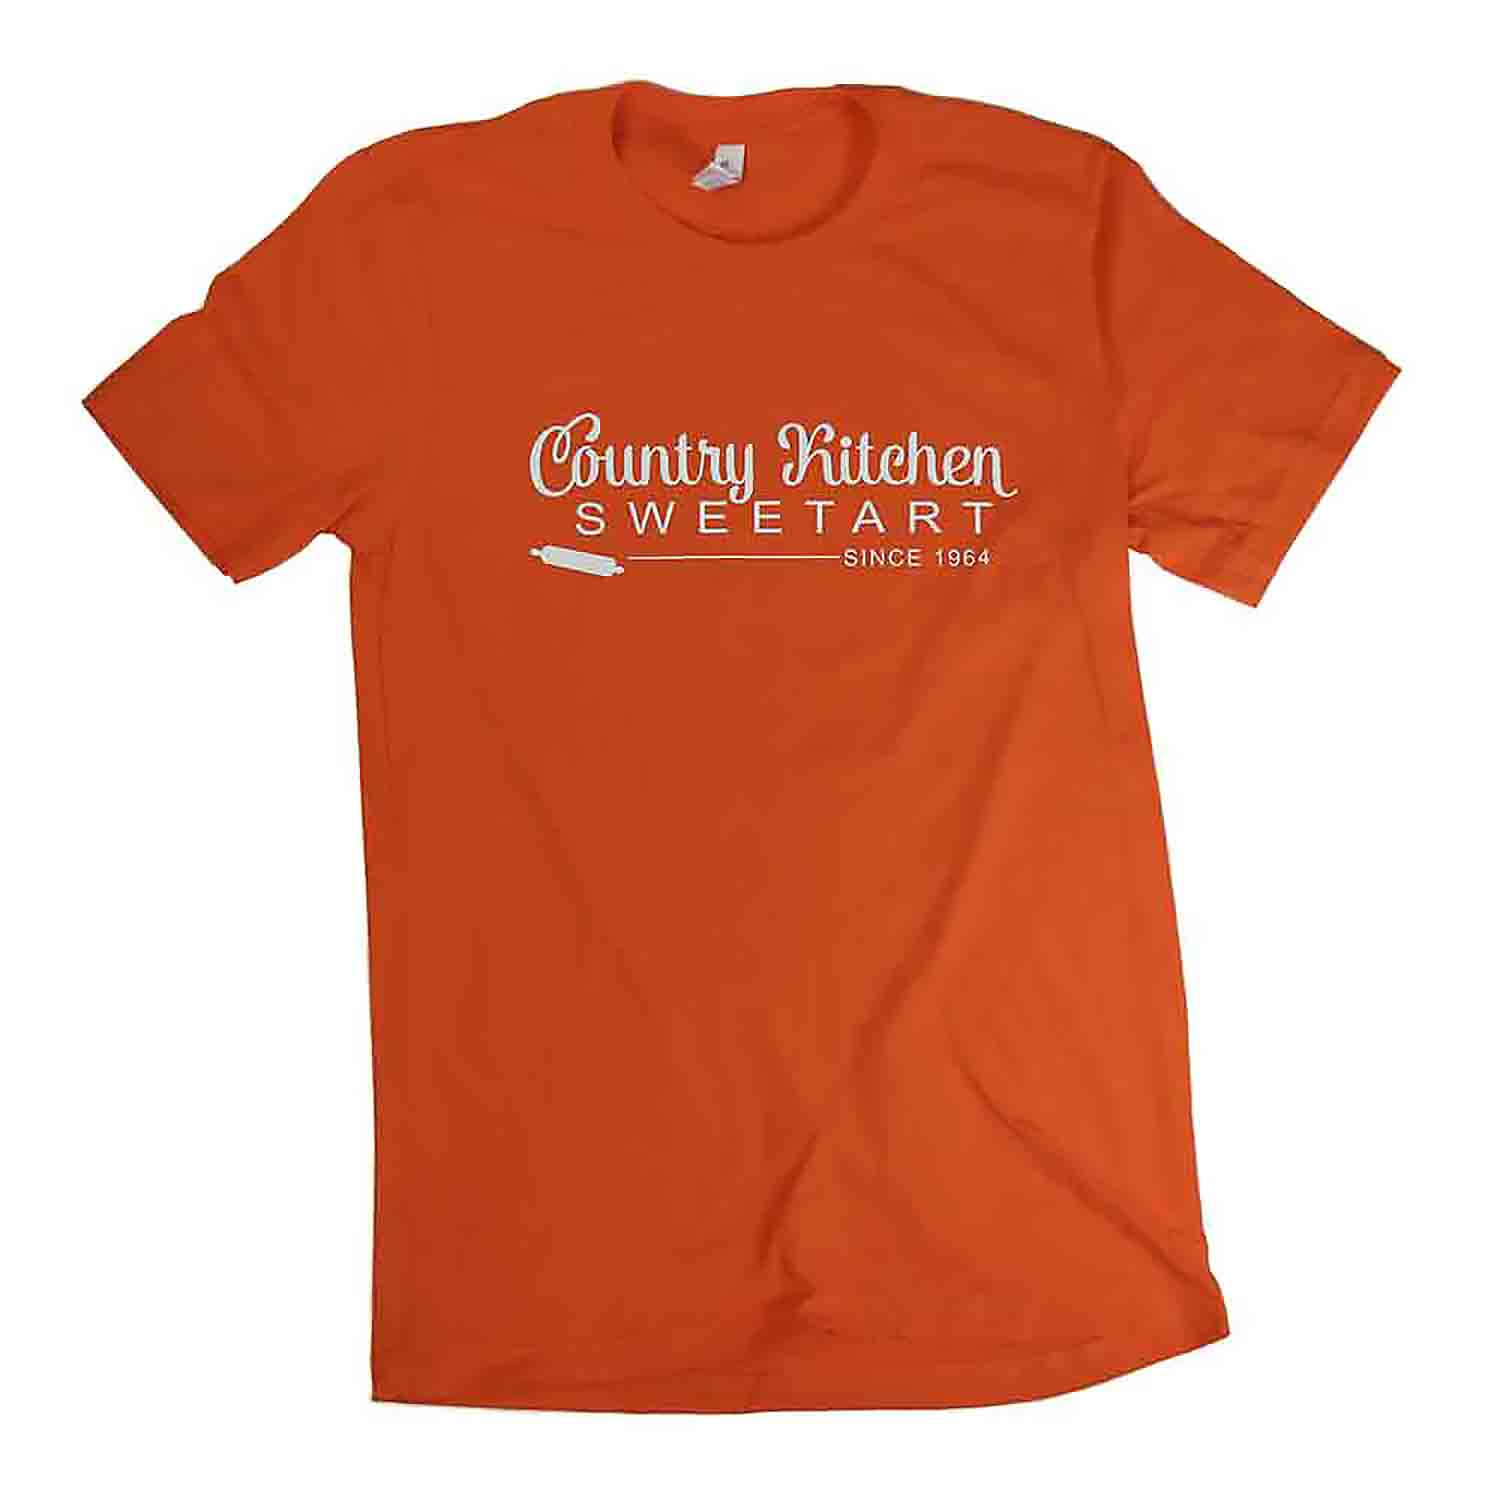 Orange Country Kitchen Sweetart T-Shirt - Large